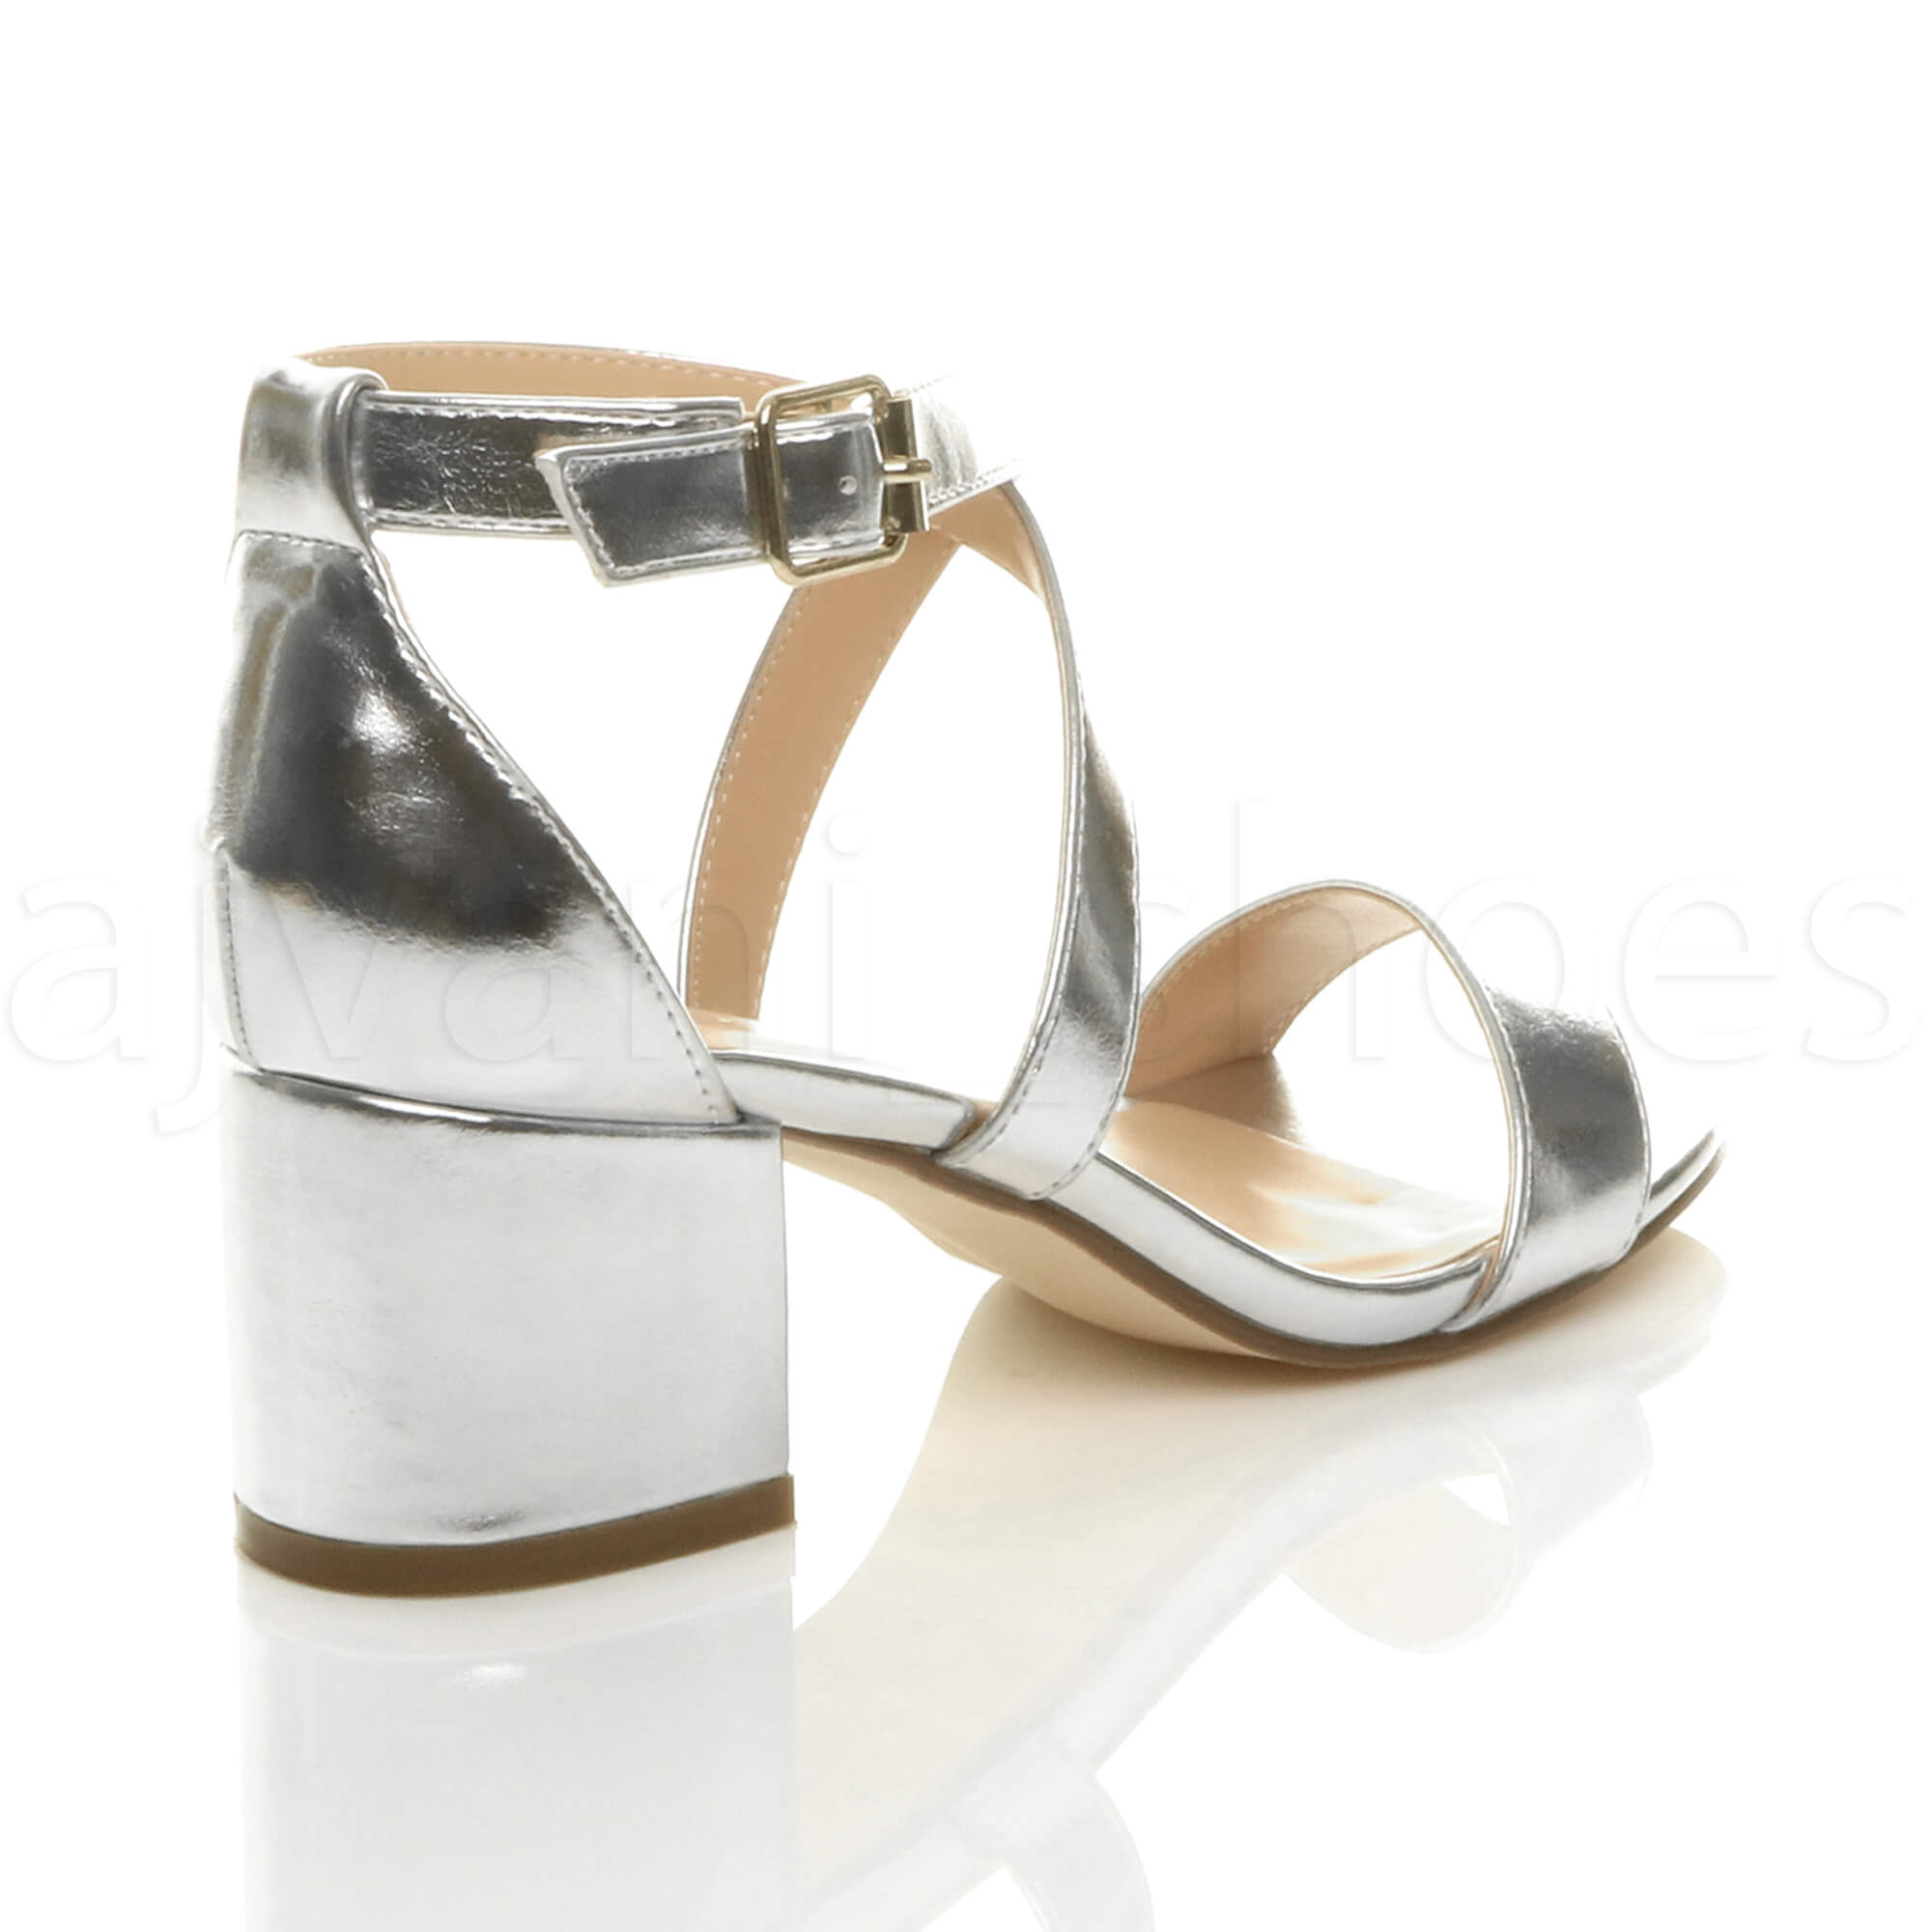 WOMENS-LADIES-MID-LOW-BLOCK-HEEL-CROSS-STRAPS-PARTY-STRAPPY-SANDALS-SHOES-SIZE thumbnail 81